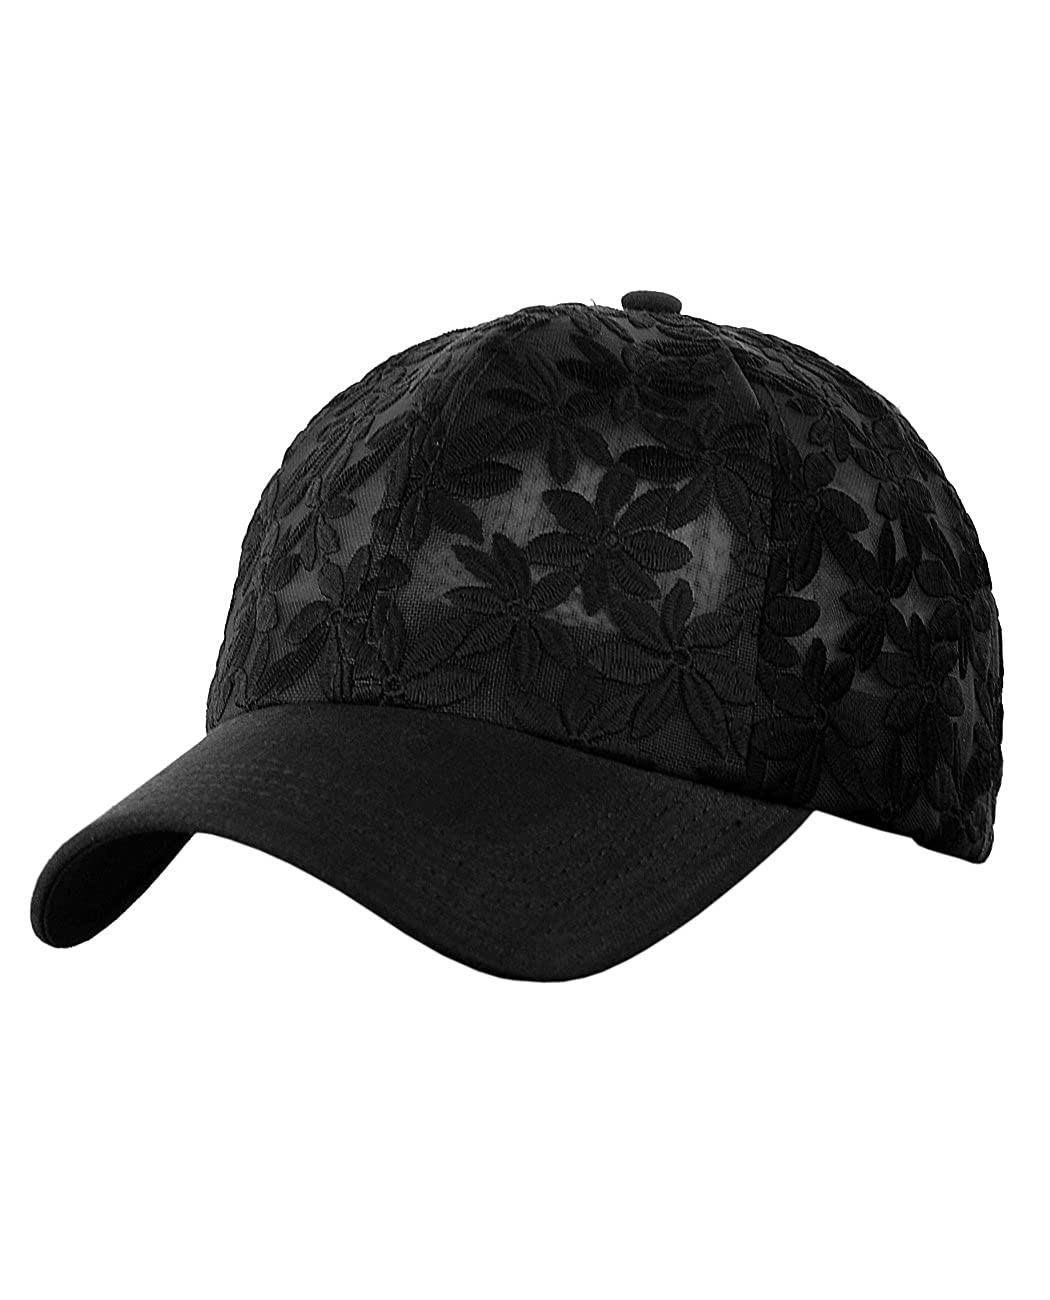 C.C Women s Floral Lace Panel Vented Adjustable Precurved Baseball Cap Hat b7f6da5d4d7